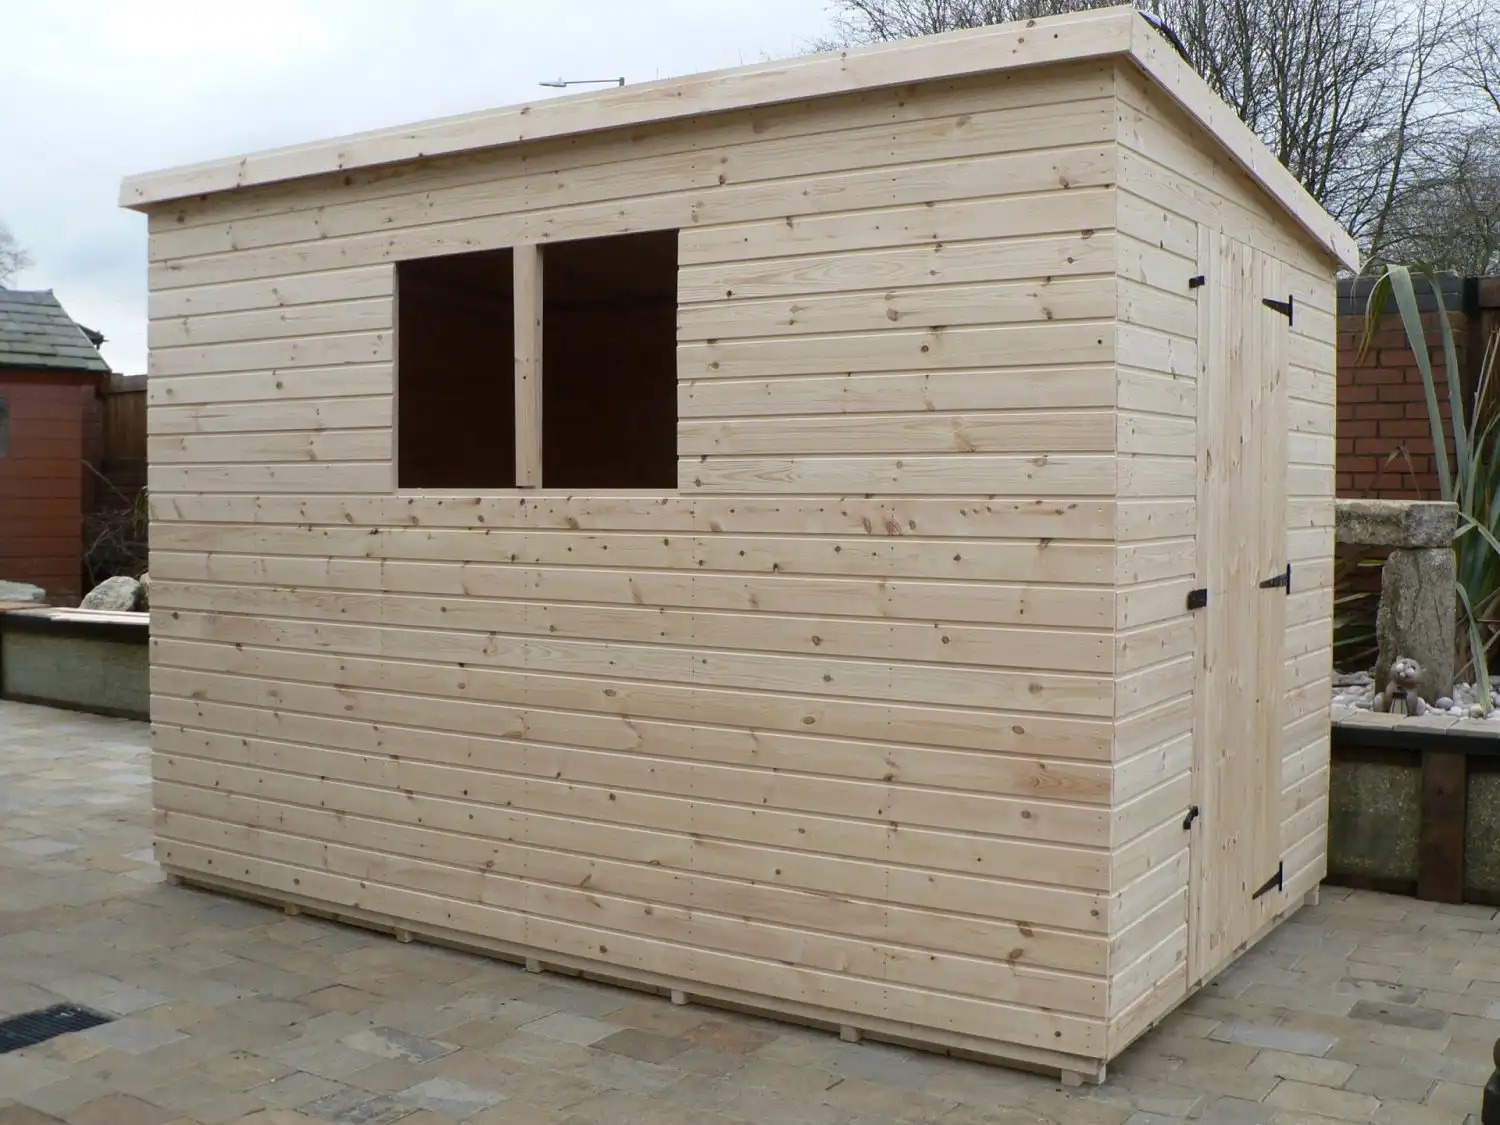 10' x 6' Pent Shed With full Size Windows